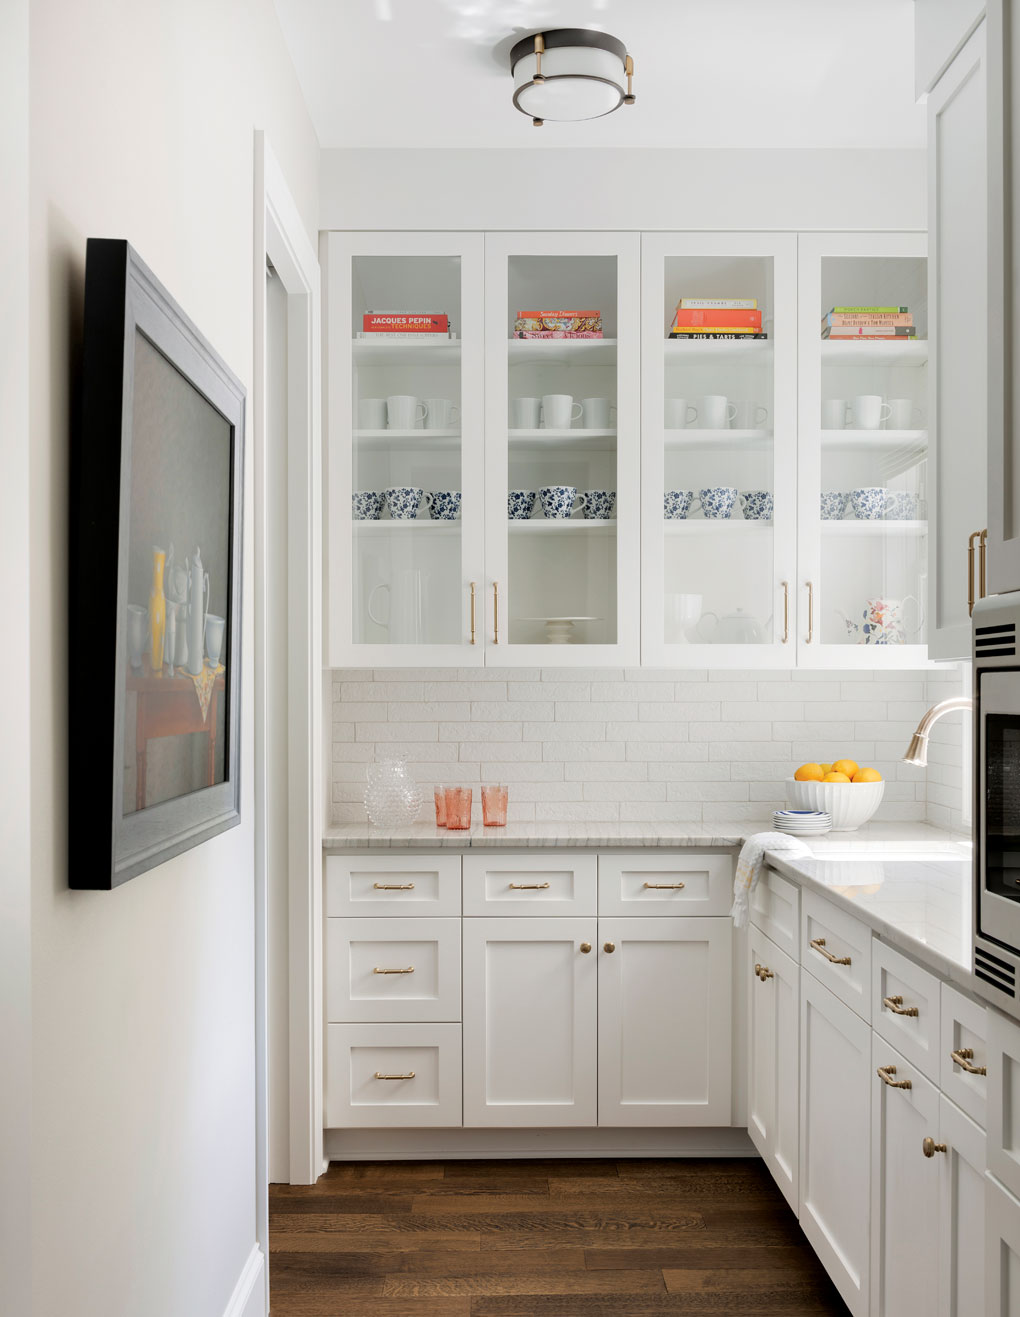 The adjacent pantry/galley keeps prep messes out of sight and features white cabinetry.